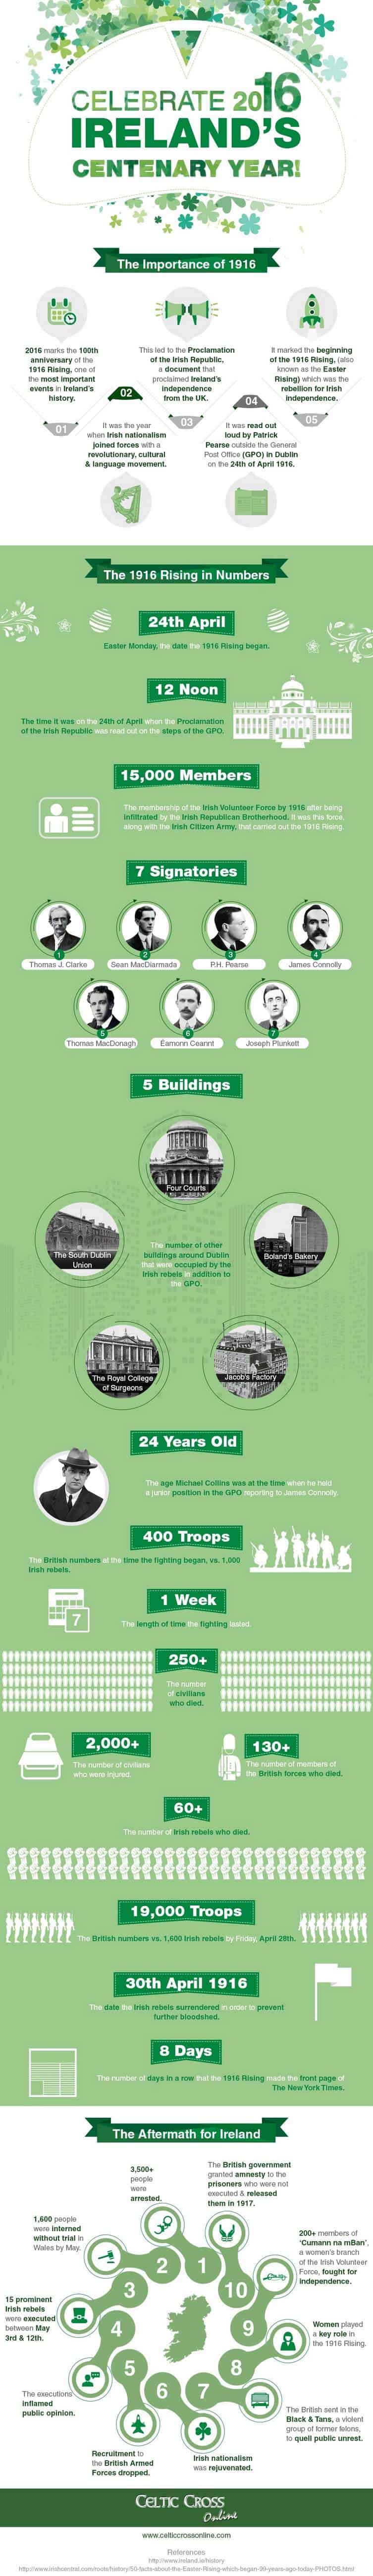 (Infographic) Celebrate 2016, Irelands Centenary Year